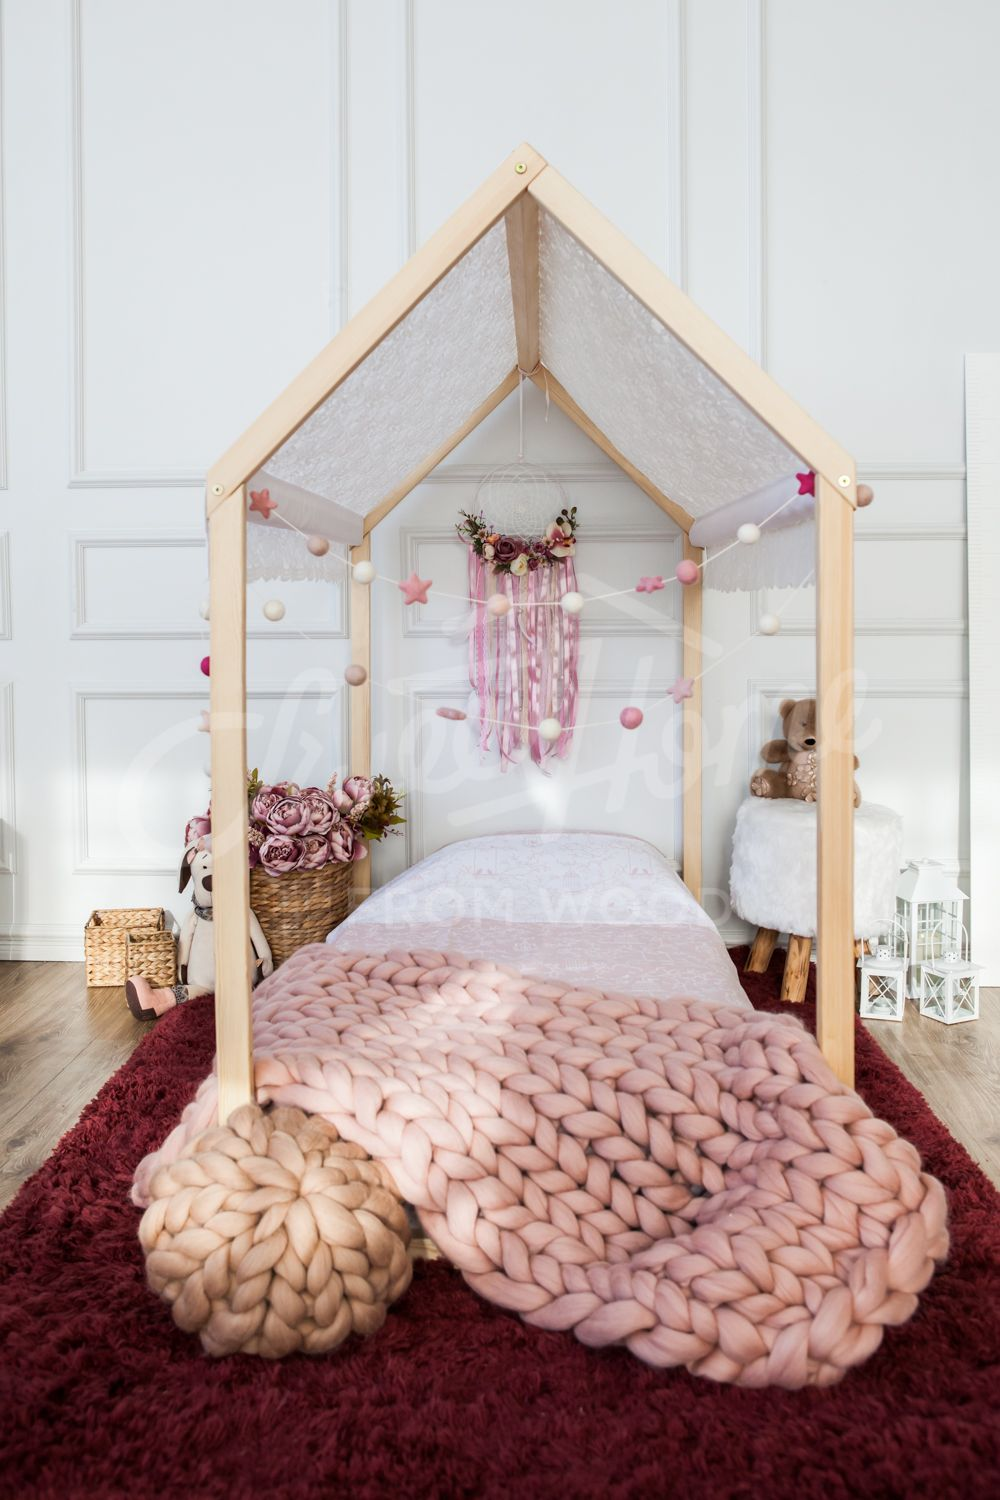 Wooden House Bed Frame Platform Bed Teepee Bed Wood Bed Frame Tent Bed Kids Bed Wood House Bed Children Bed